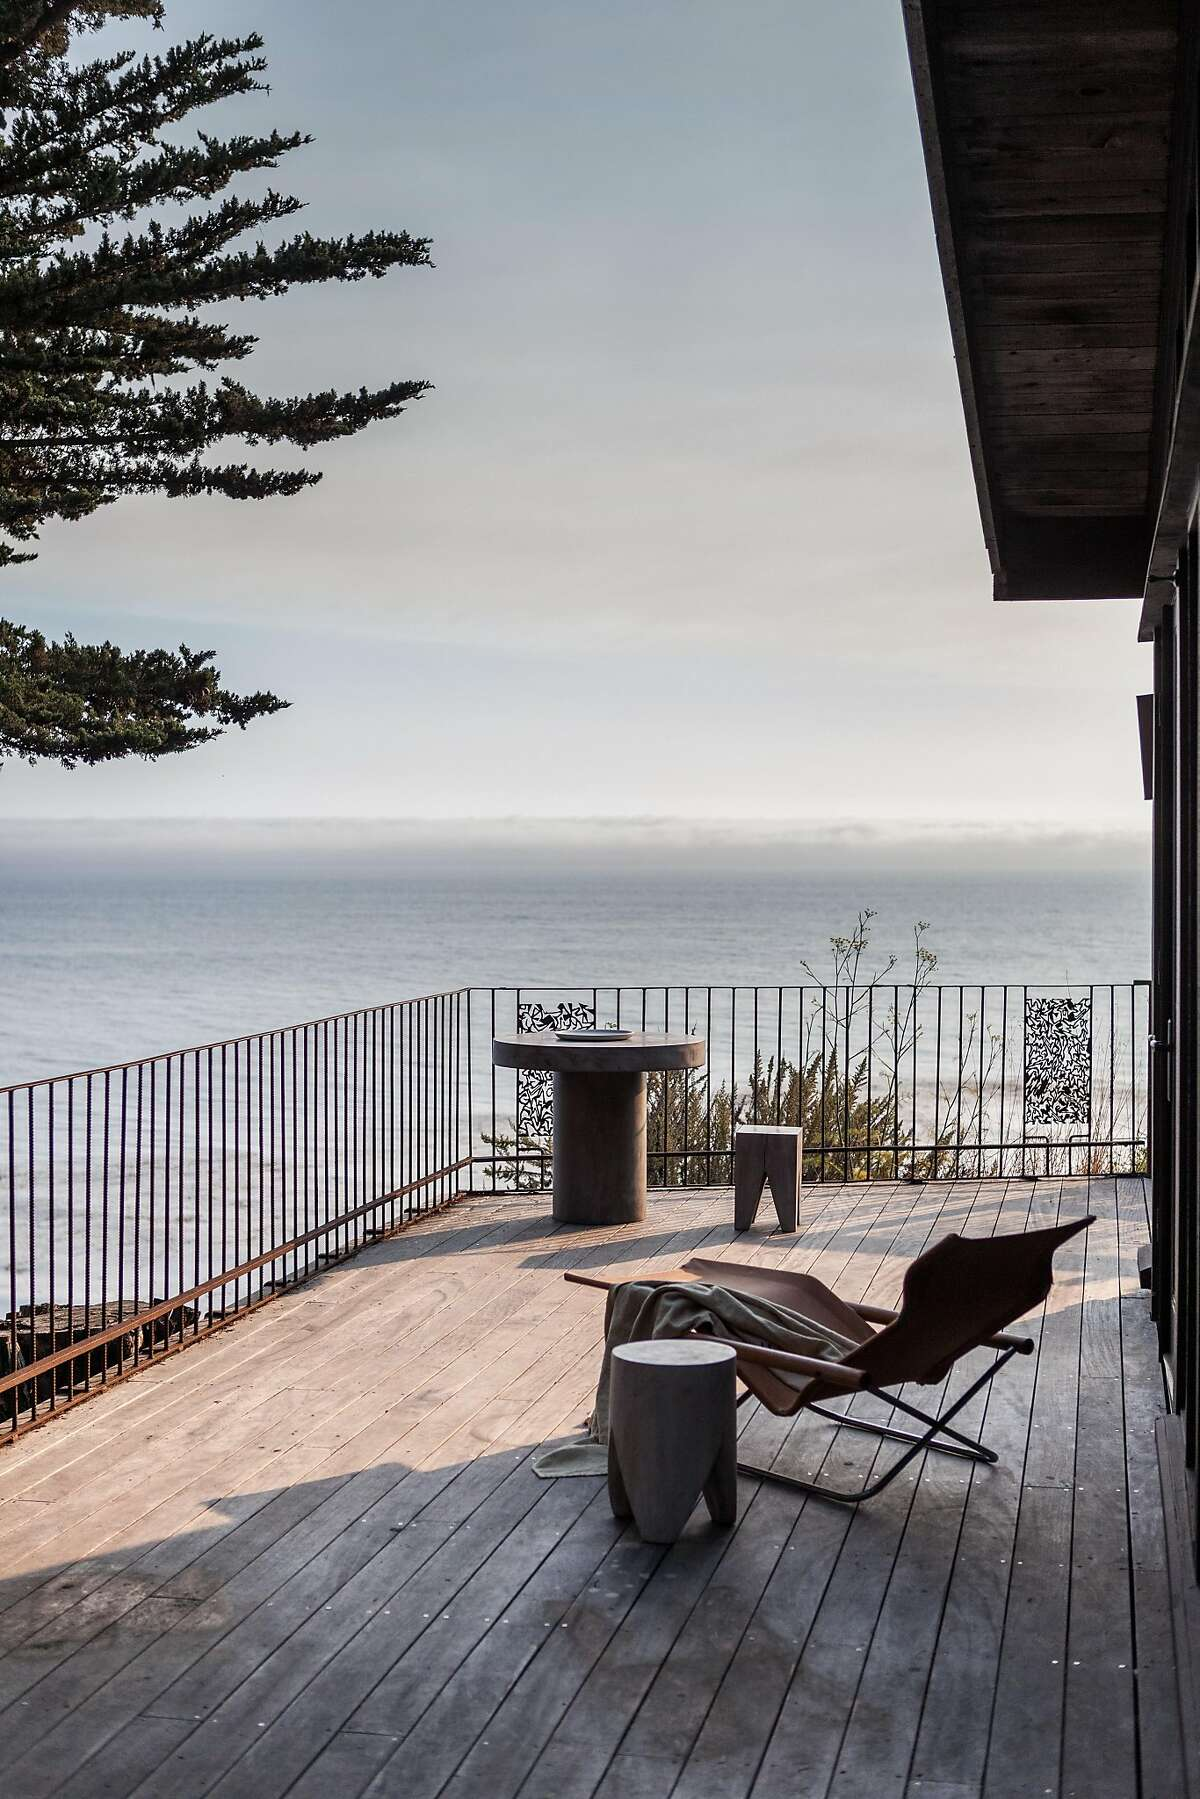 The view from Esalen.